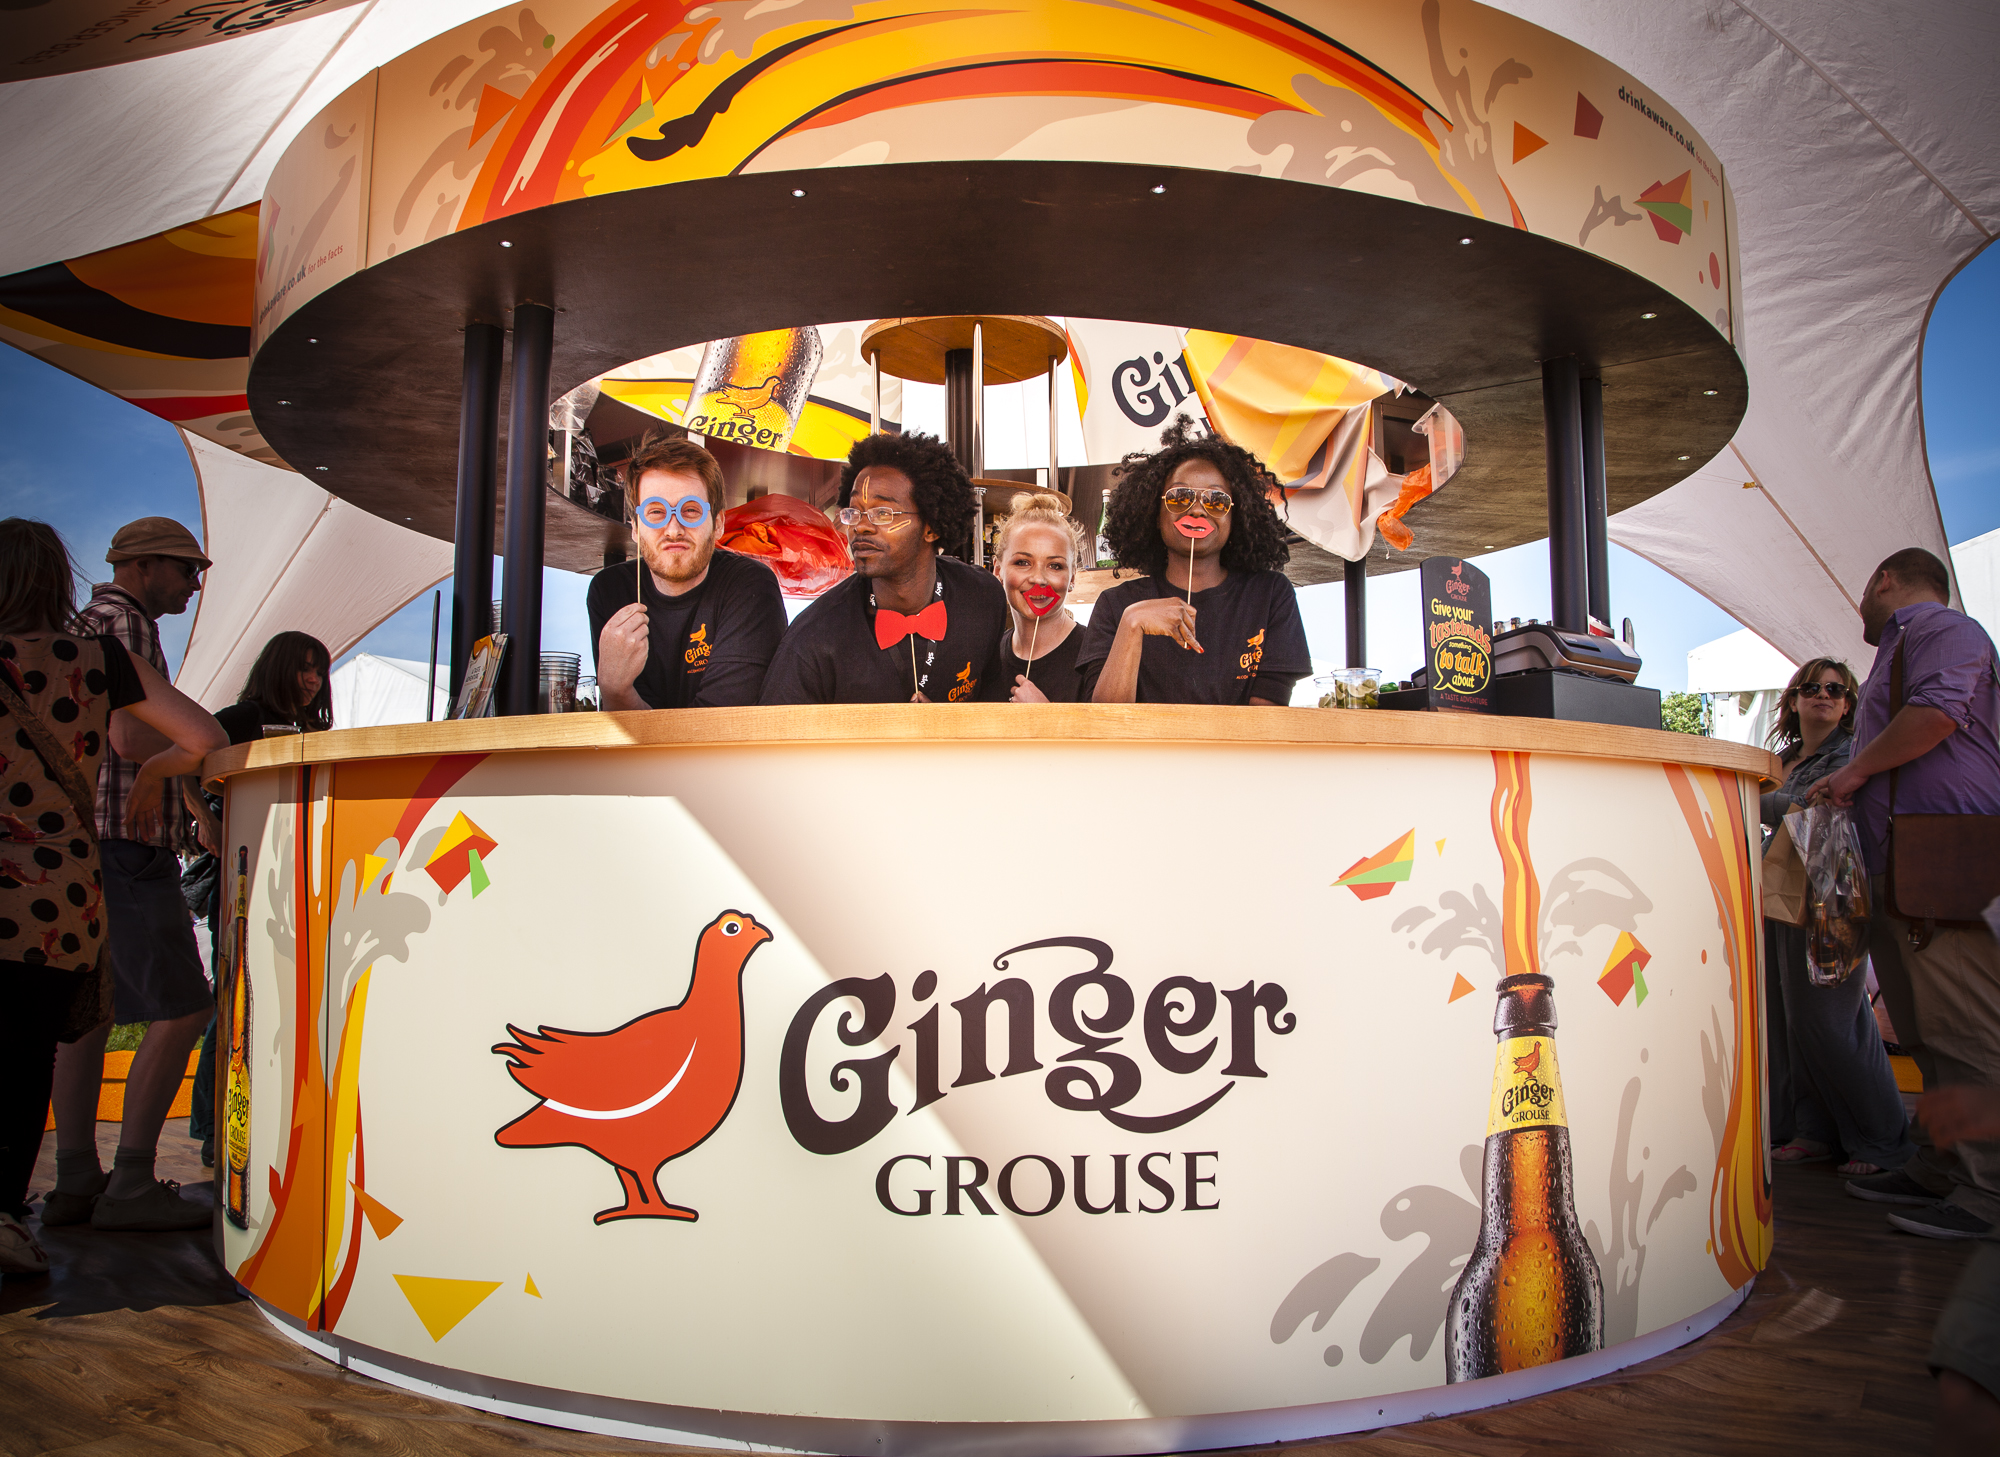 The nation was introduced to Ginger Grouse